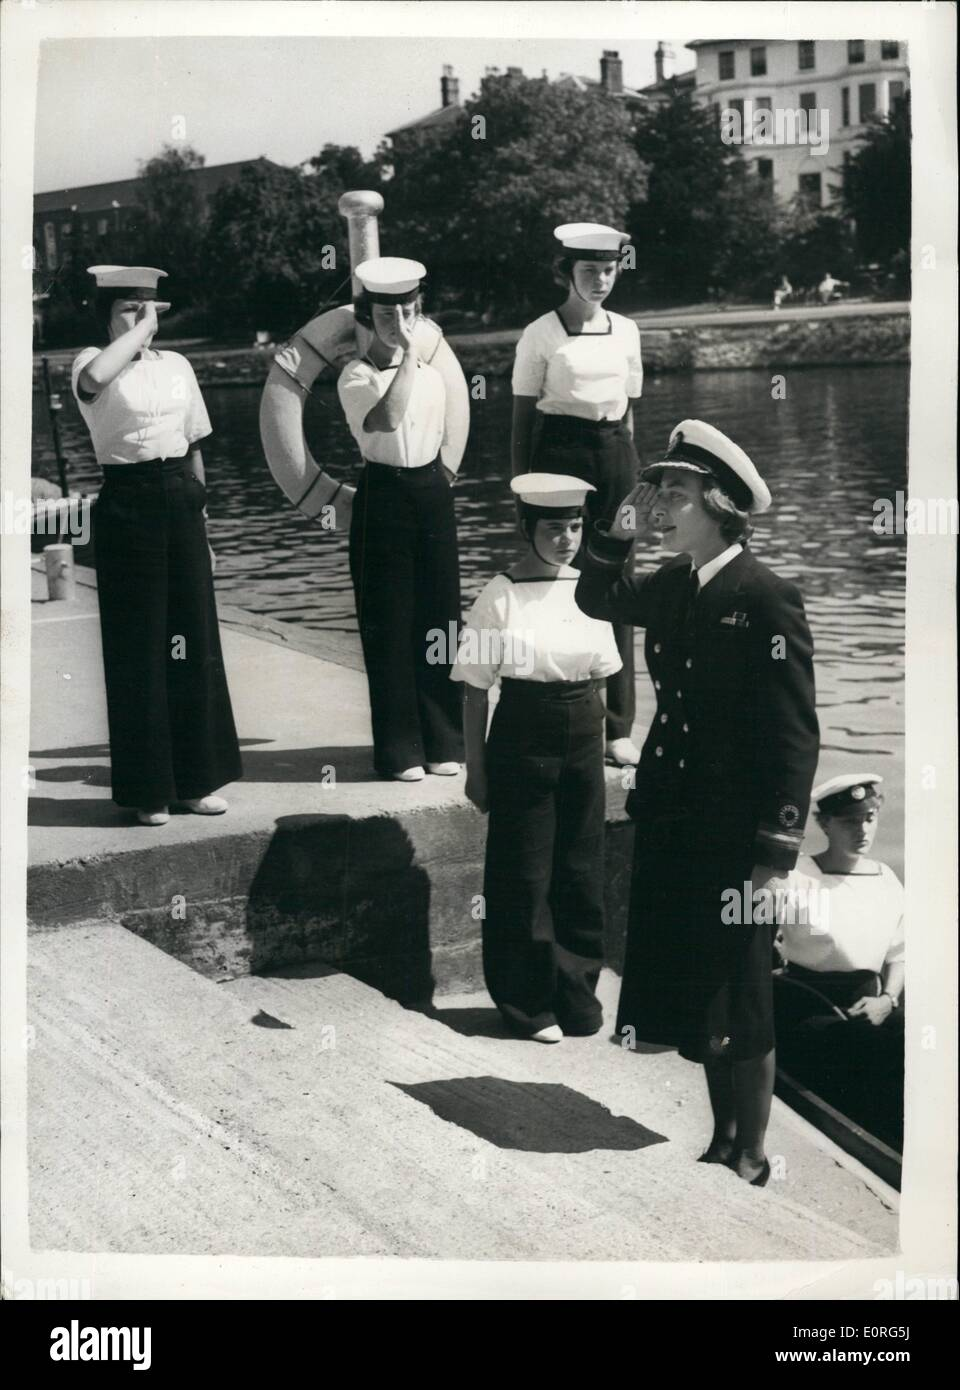 Aug. 08, 1959 - Lady Pamela Mountbatten visits girl's nautical training corps: Lady Pamela Mountbatten today paidStock Photo